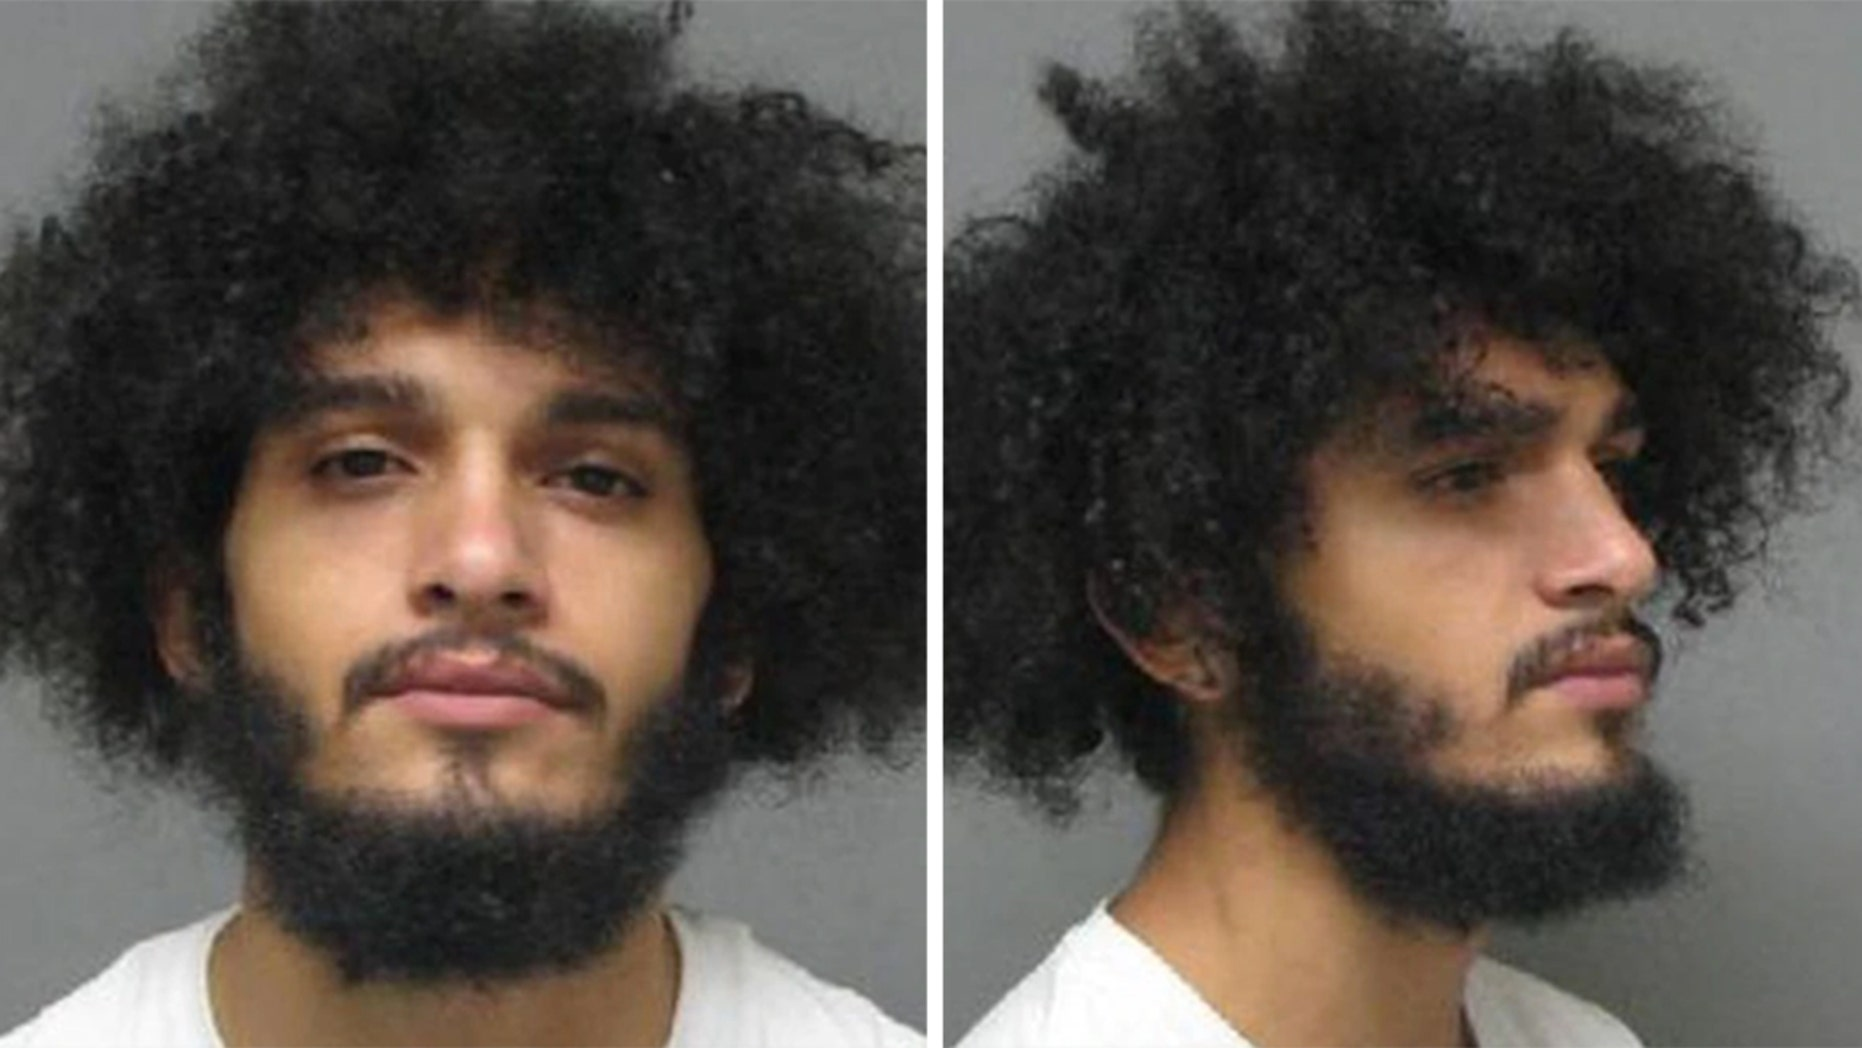 Isaiah Jackson, 20, was taken into custody and remains incarcerated in the Clark County Jail. (Clark County Sheriff's Office)